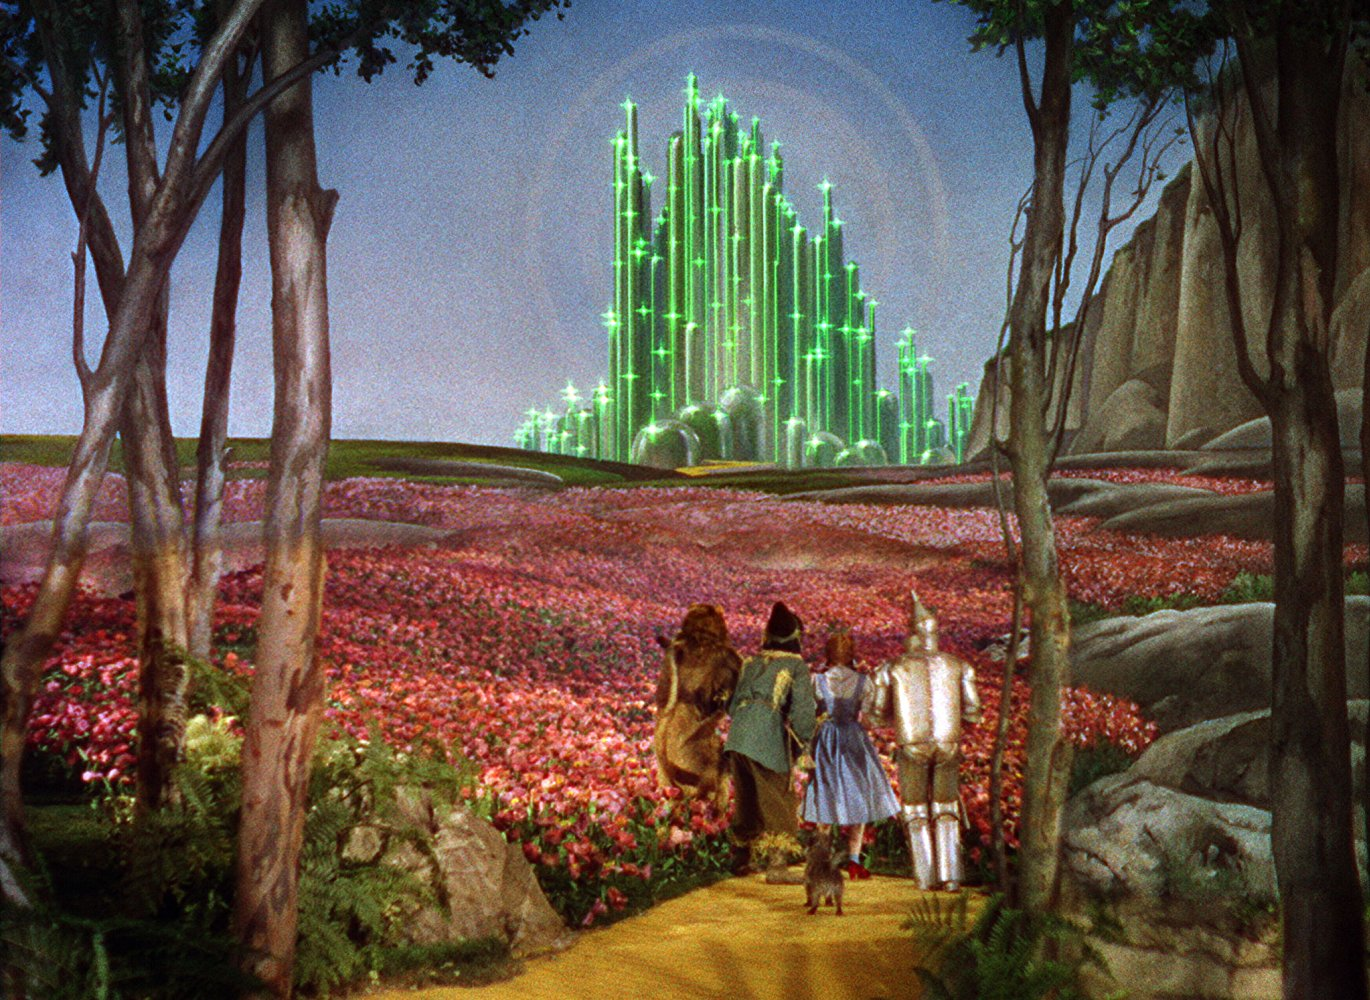 Dorothy and companions off down the Yellow Brick Road to the Emerald City of Oz in The Wizard of Oz (1939)